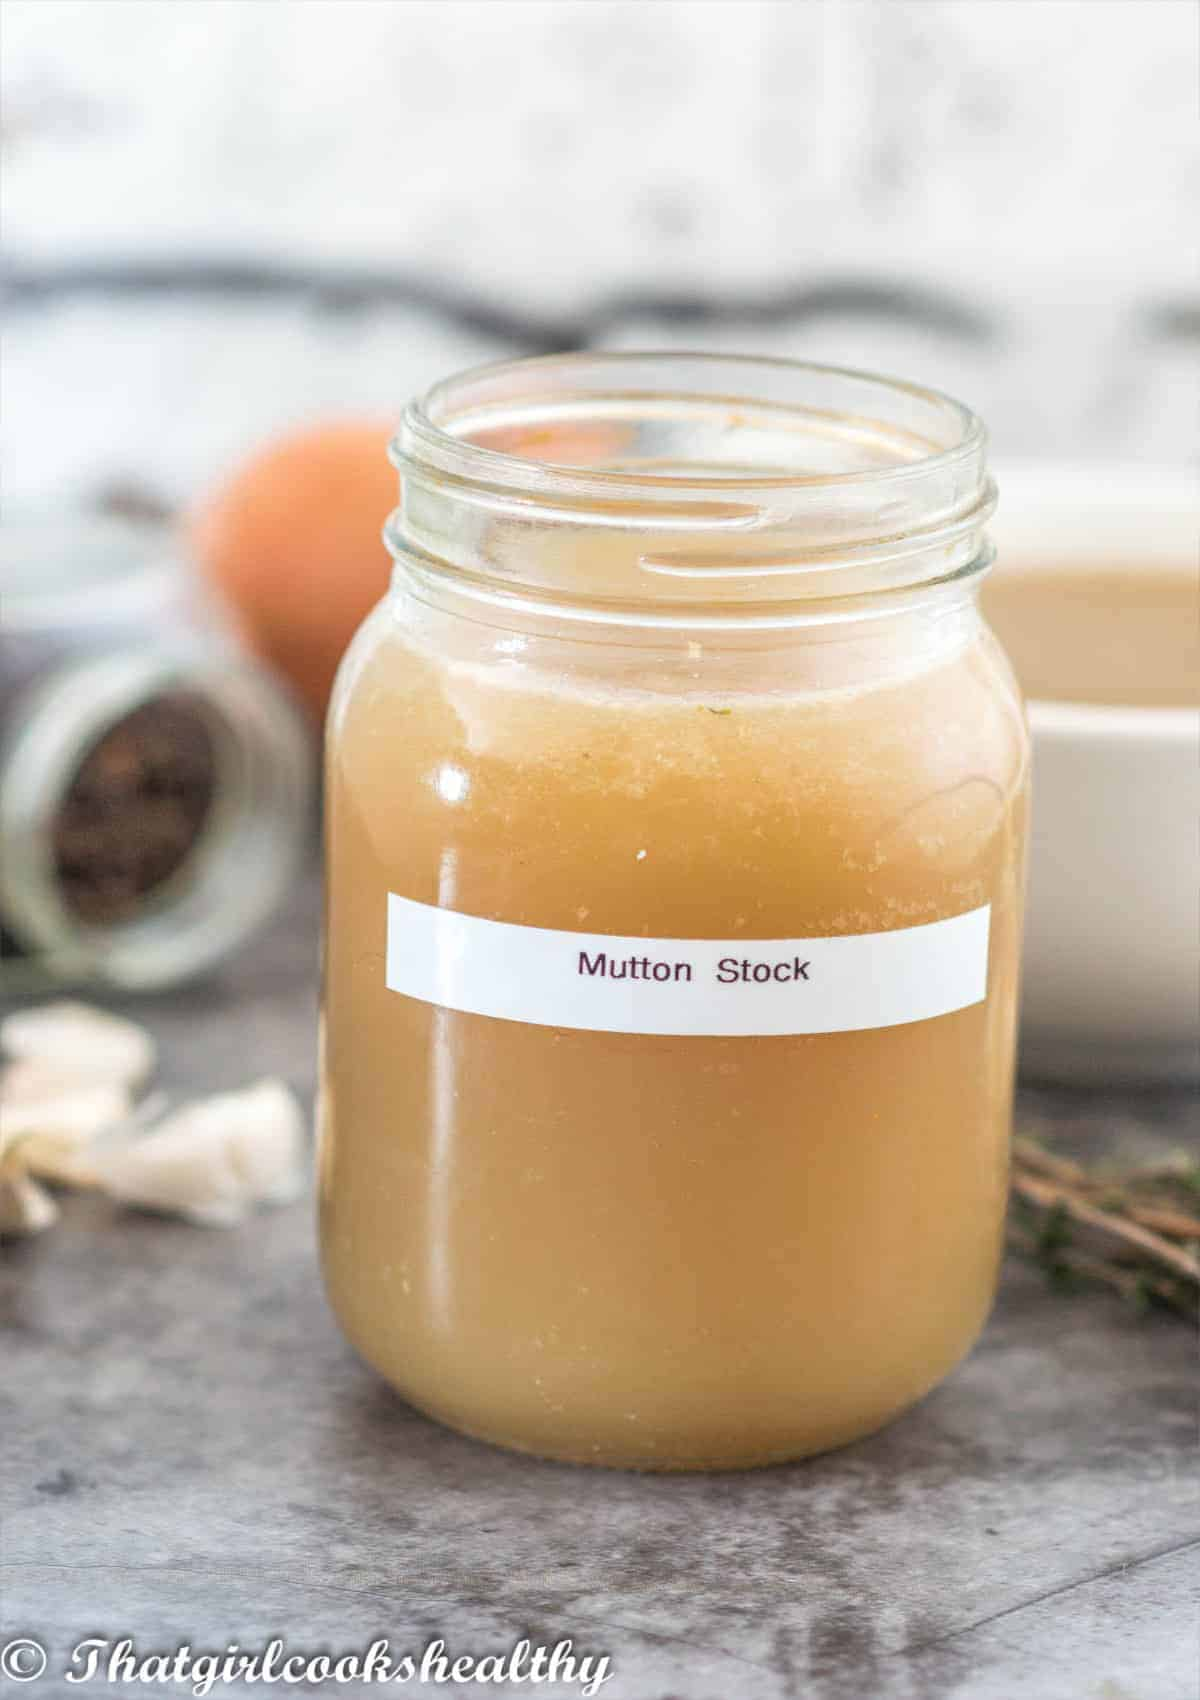 stock in a glass jar